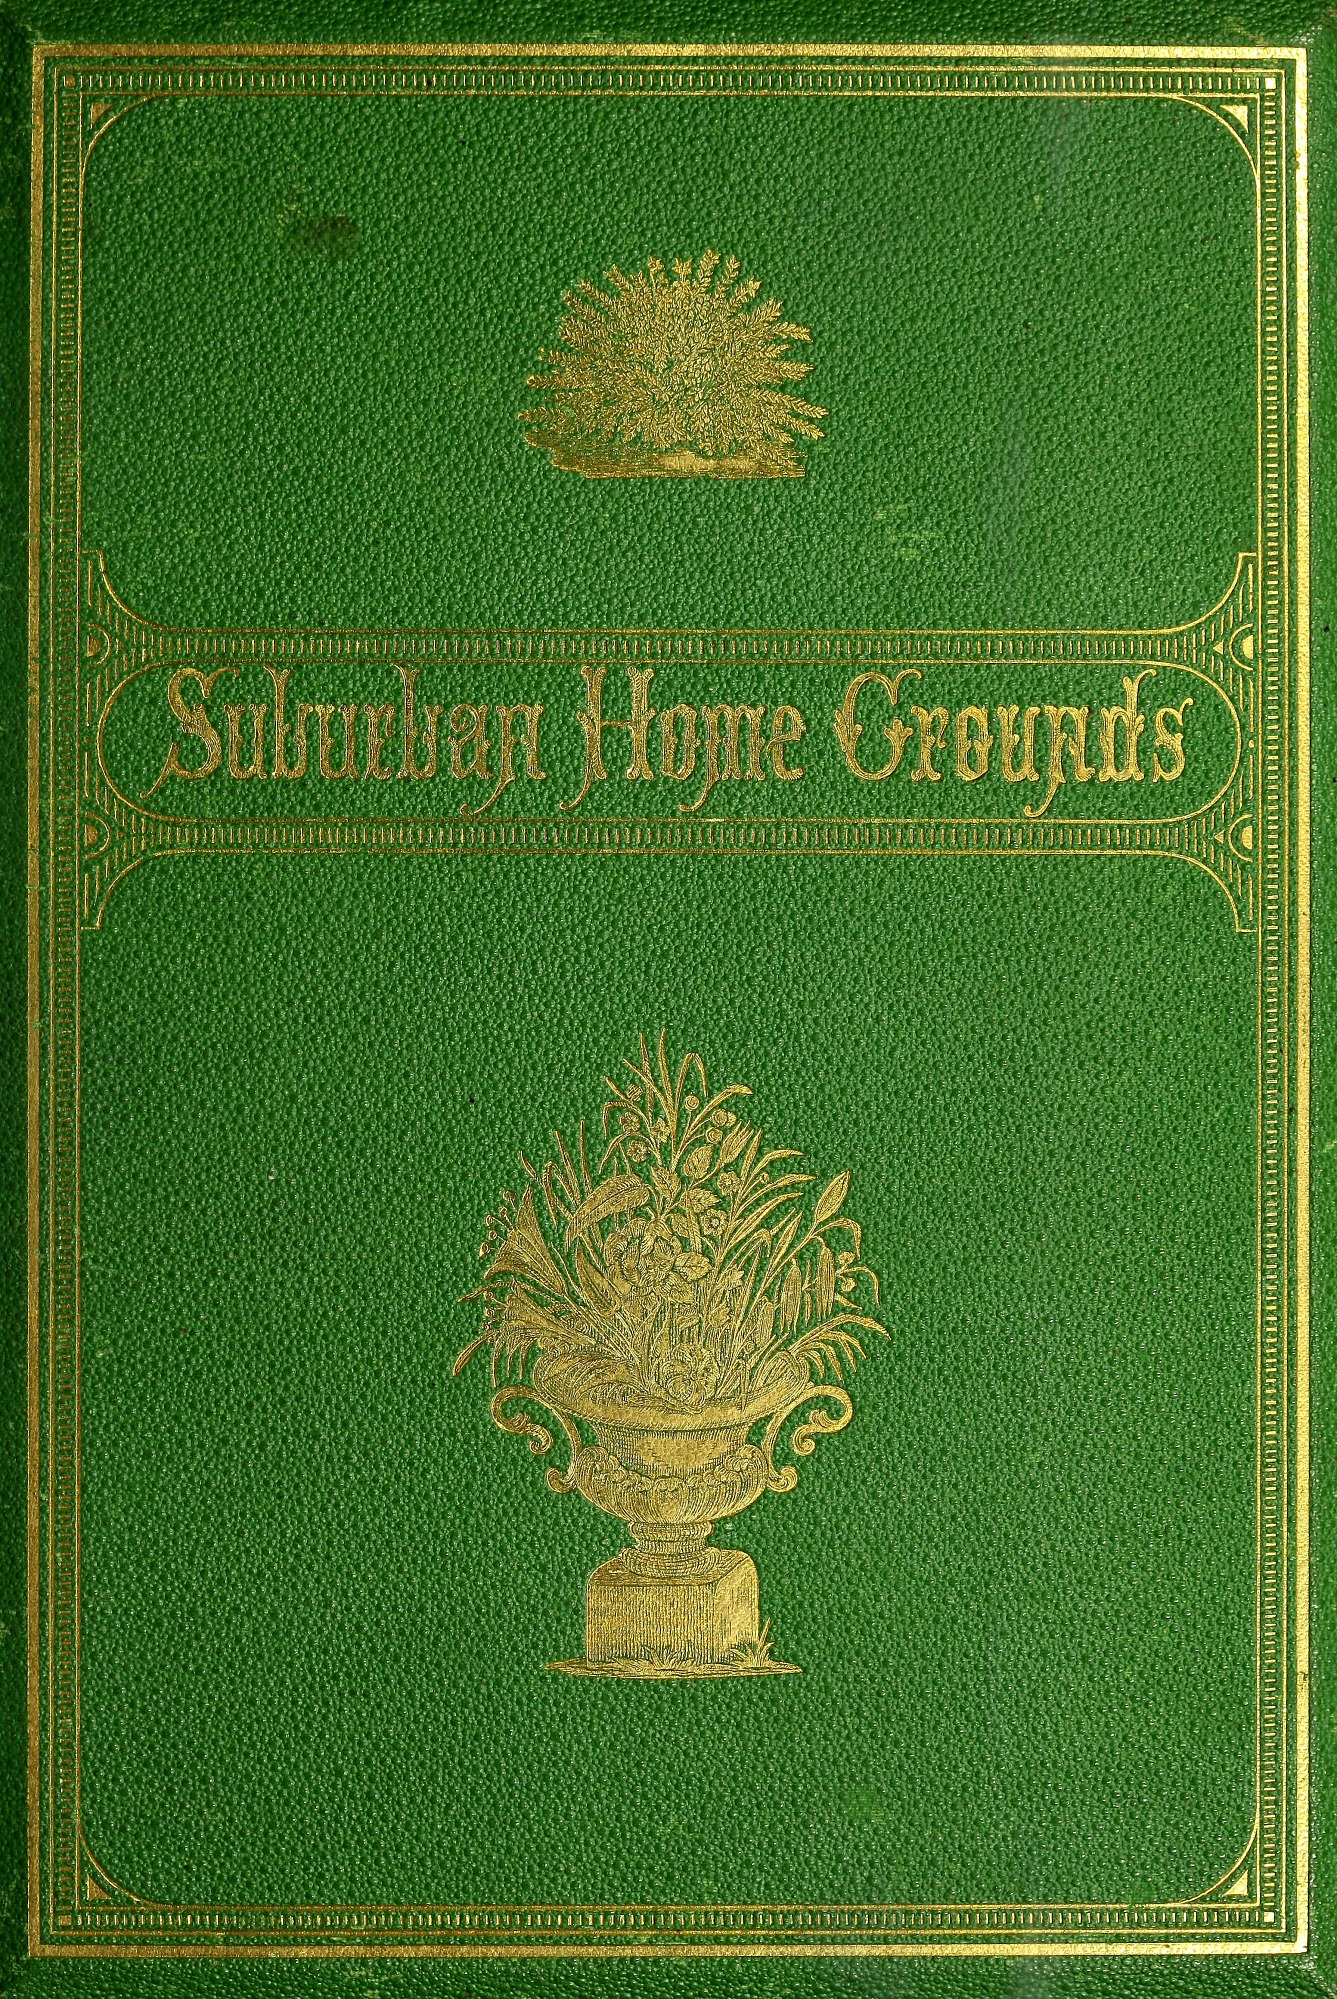 Frank J. Scott, The Art of Beautifying Suburban Home Grounds of Small Extent